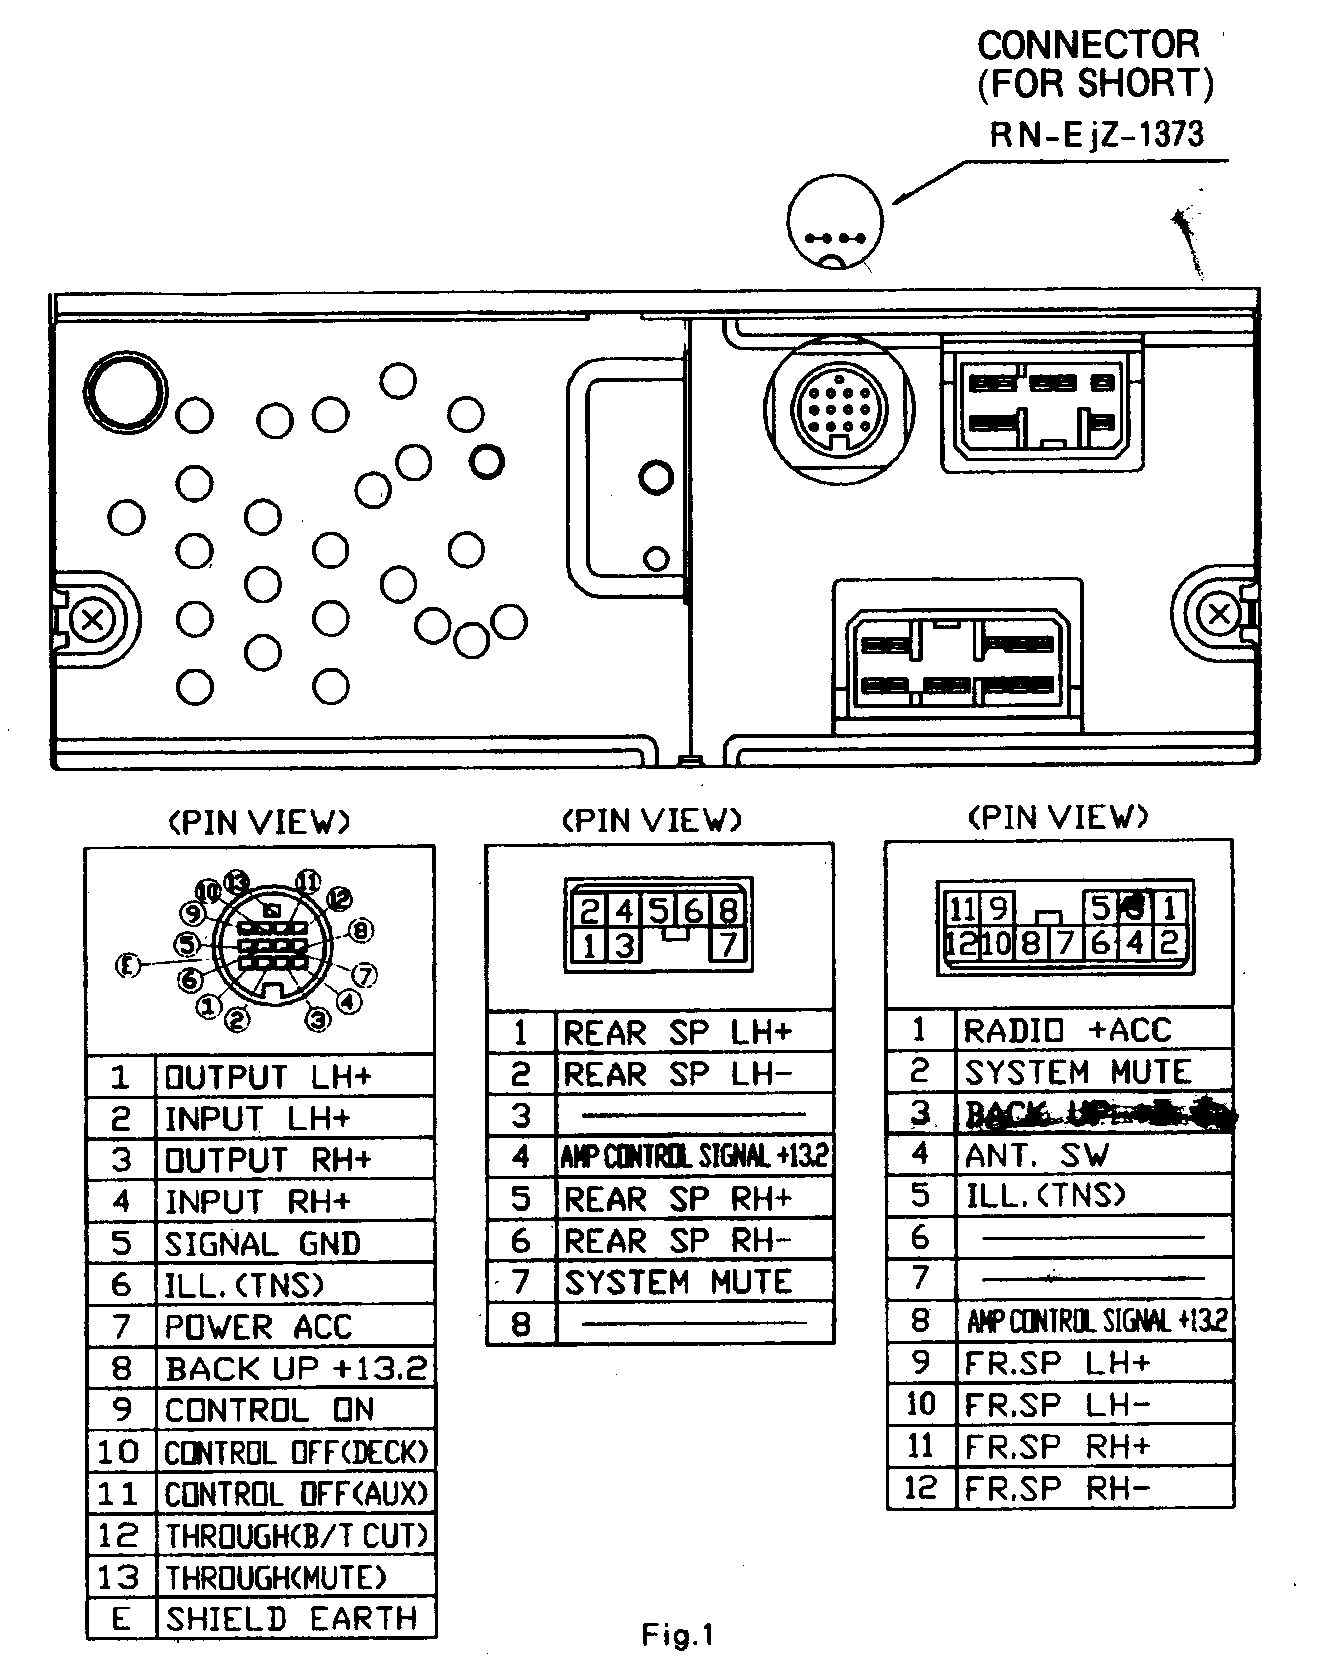 Bose Car Stereo Wiring Diagrams Wiring Schematics Diagram MIE2i Bose Wiring- Diagram Bose Wiring Diagram